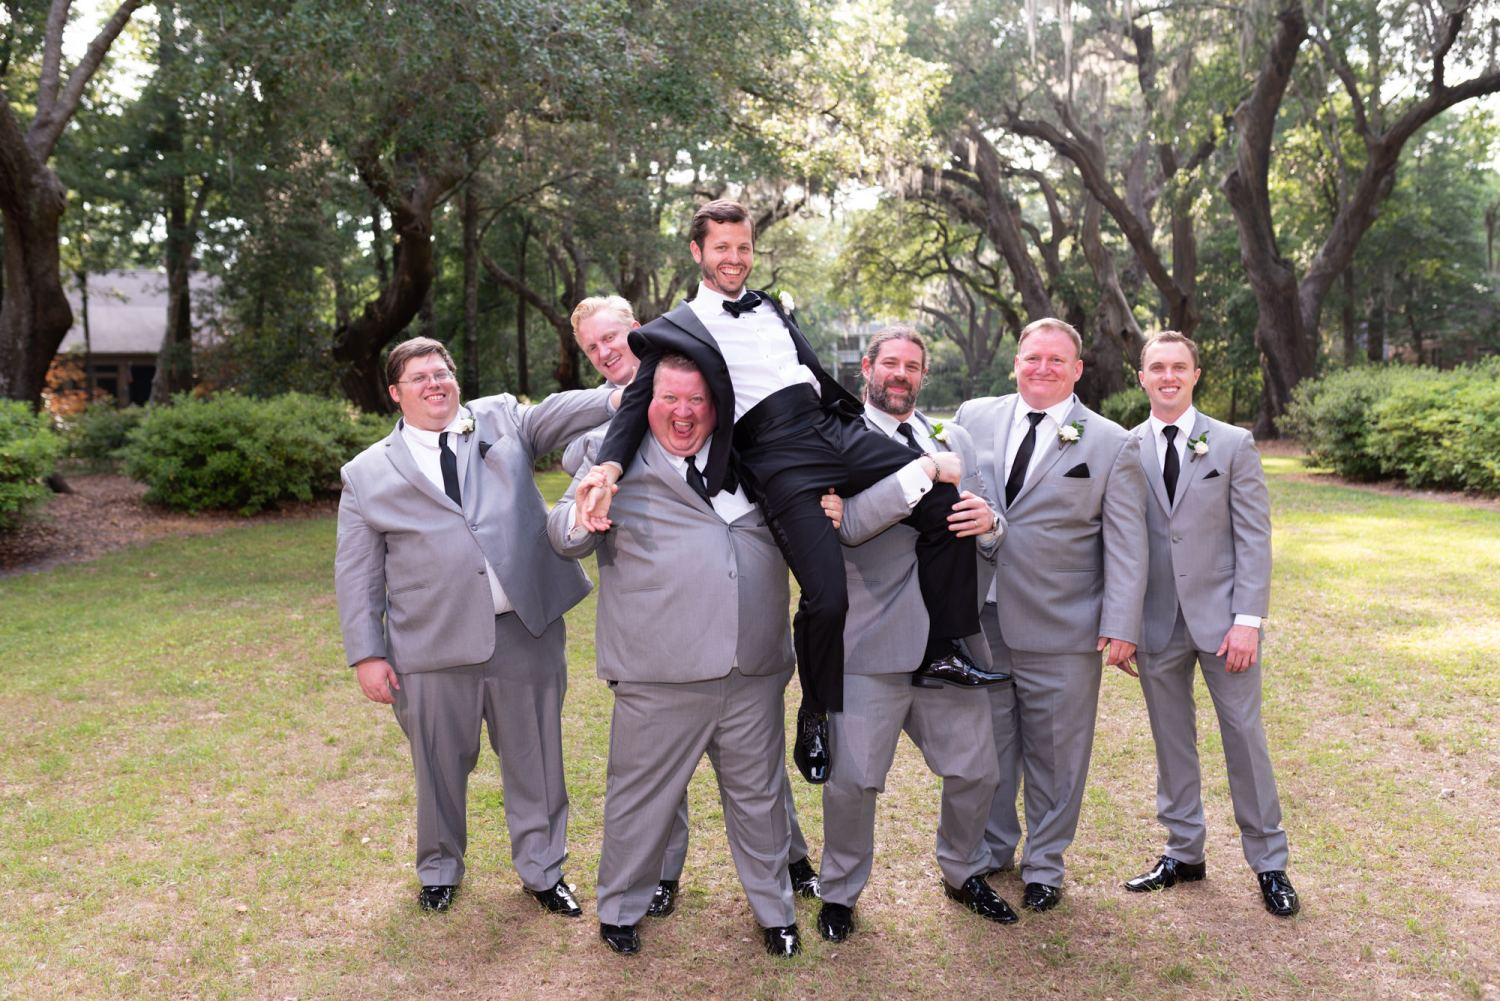 Groomsmen lifting up the groom - Wachesaw Plantation